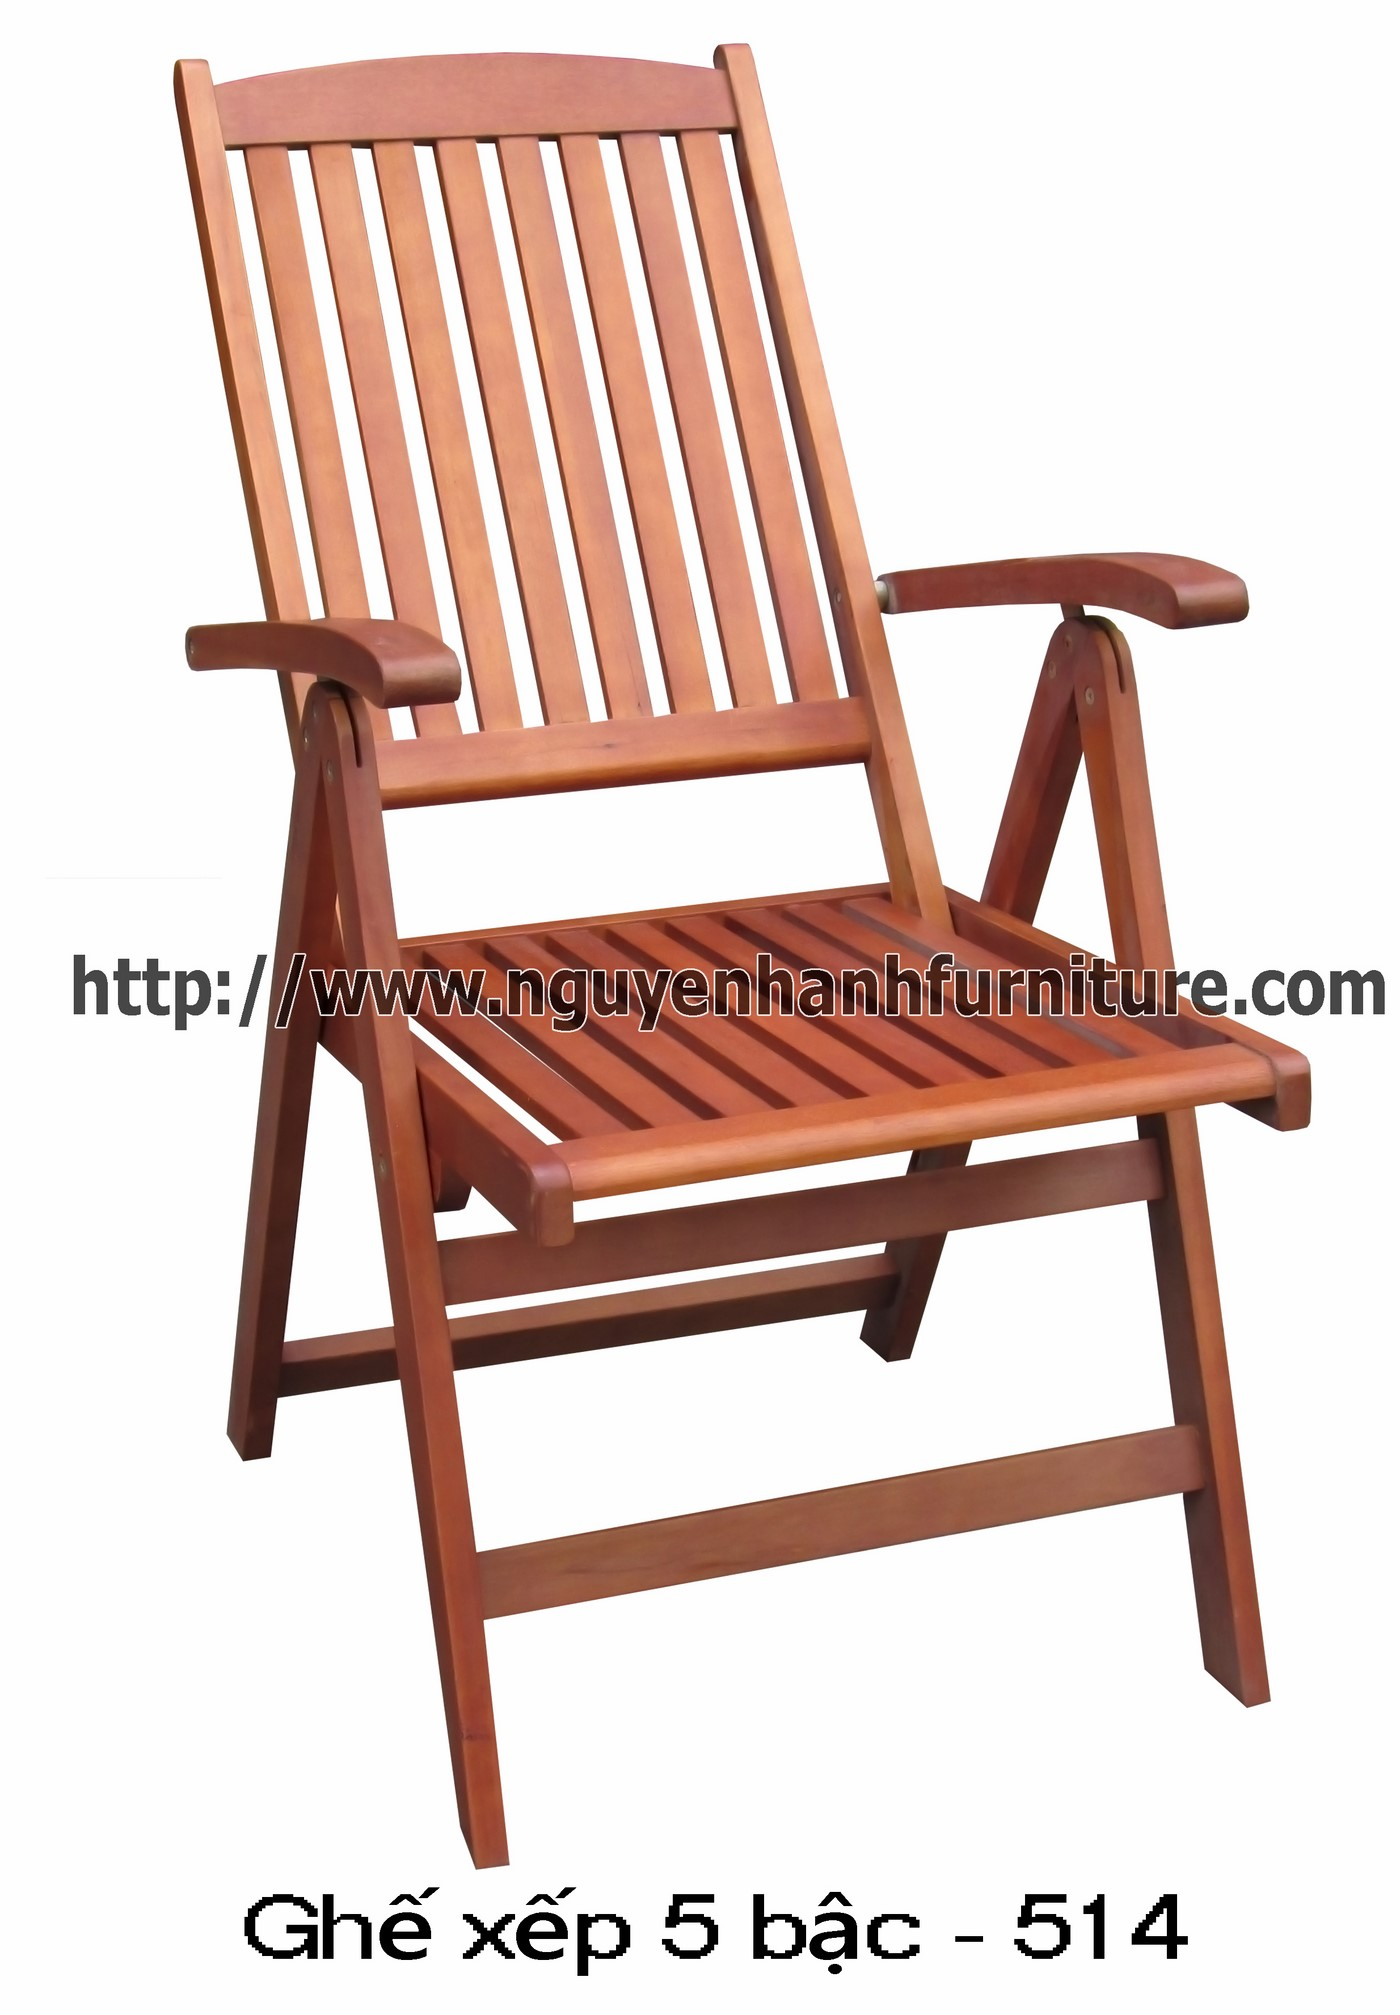 Name product: 515 chair - Description: